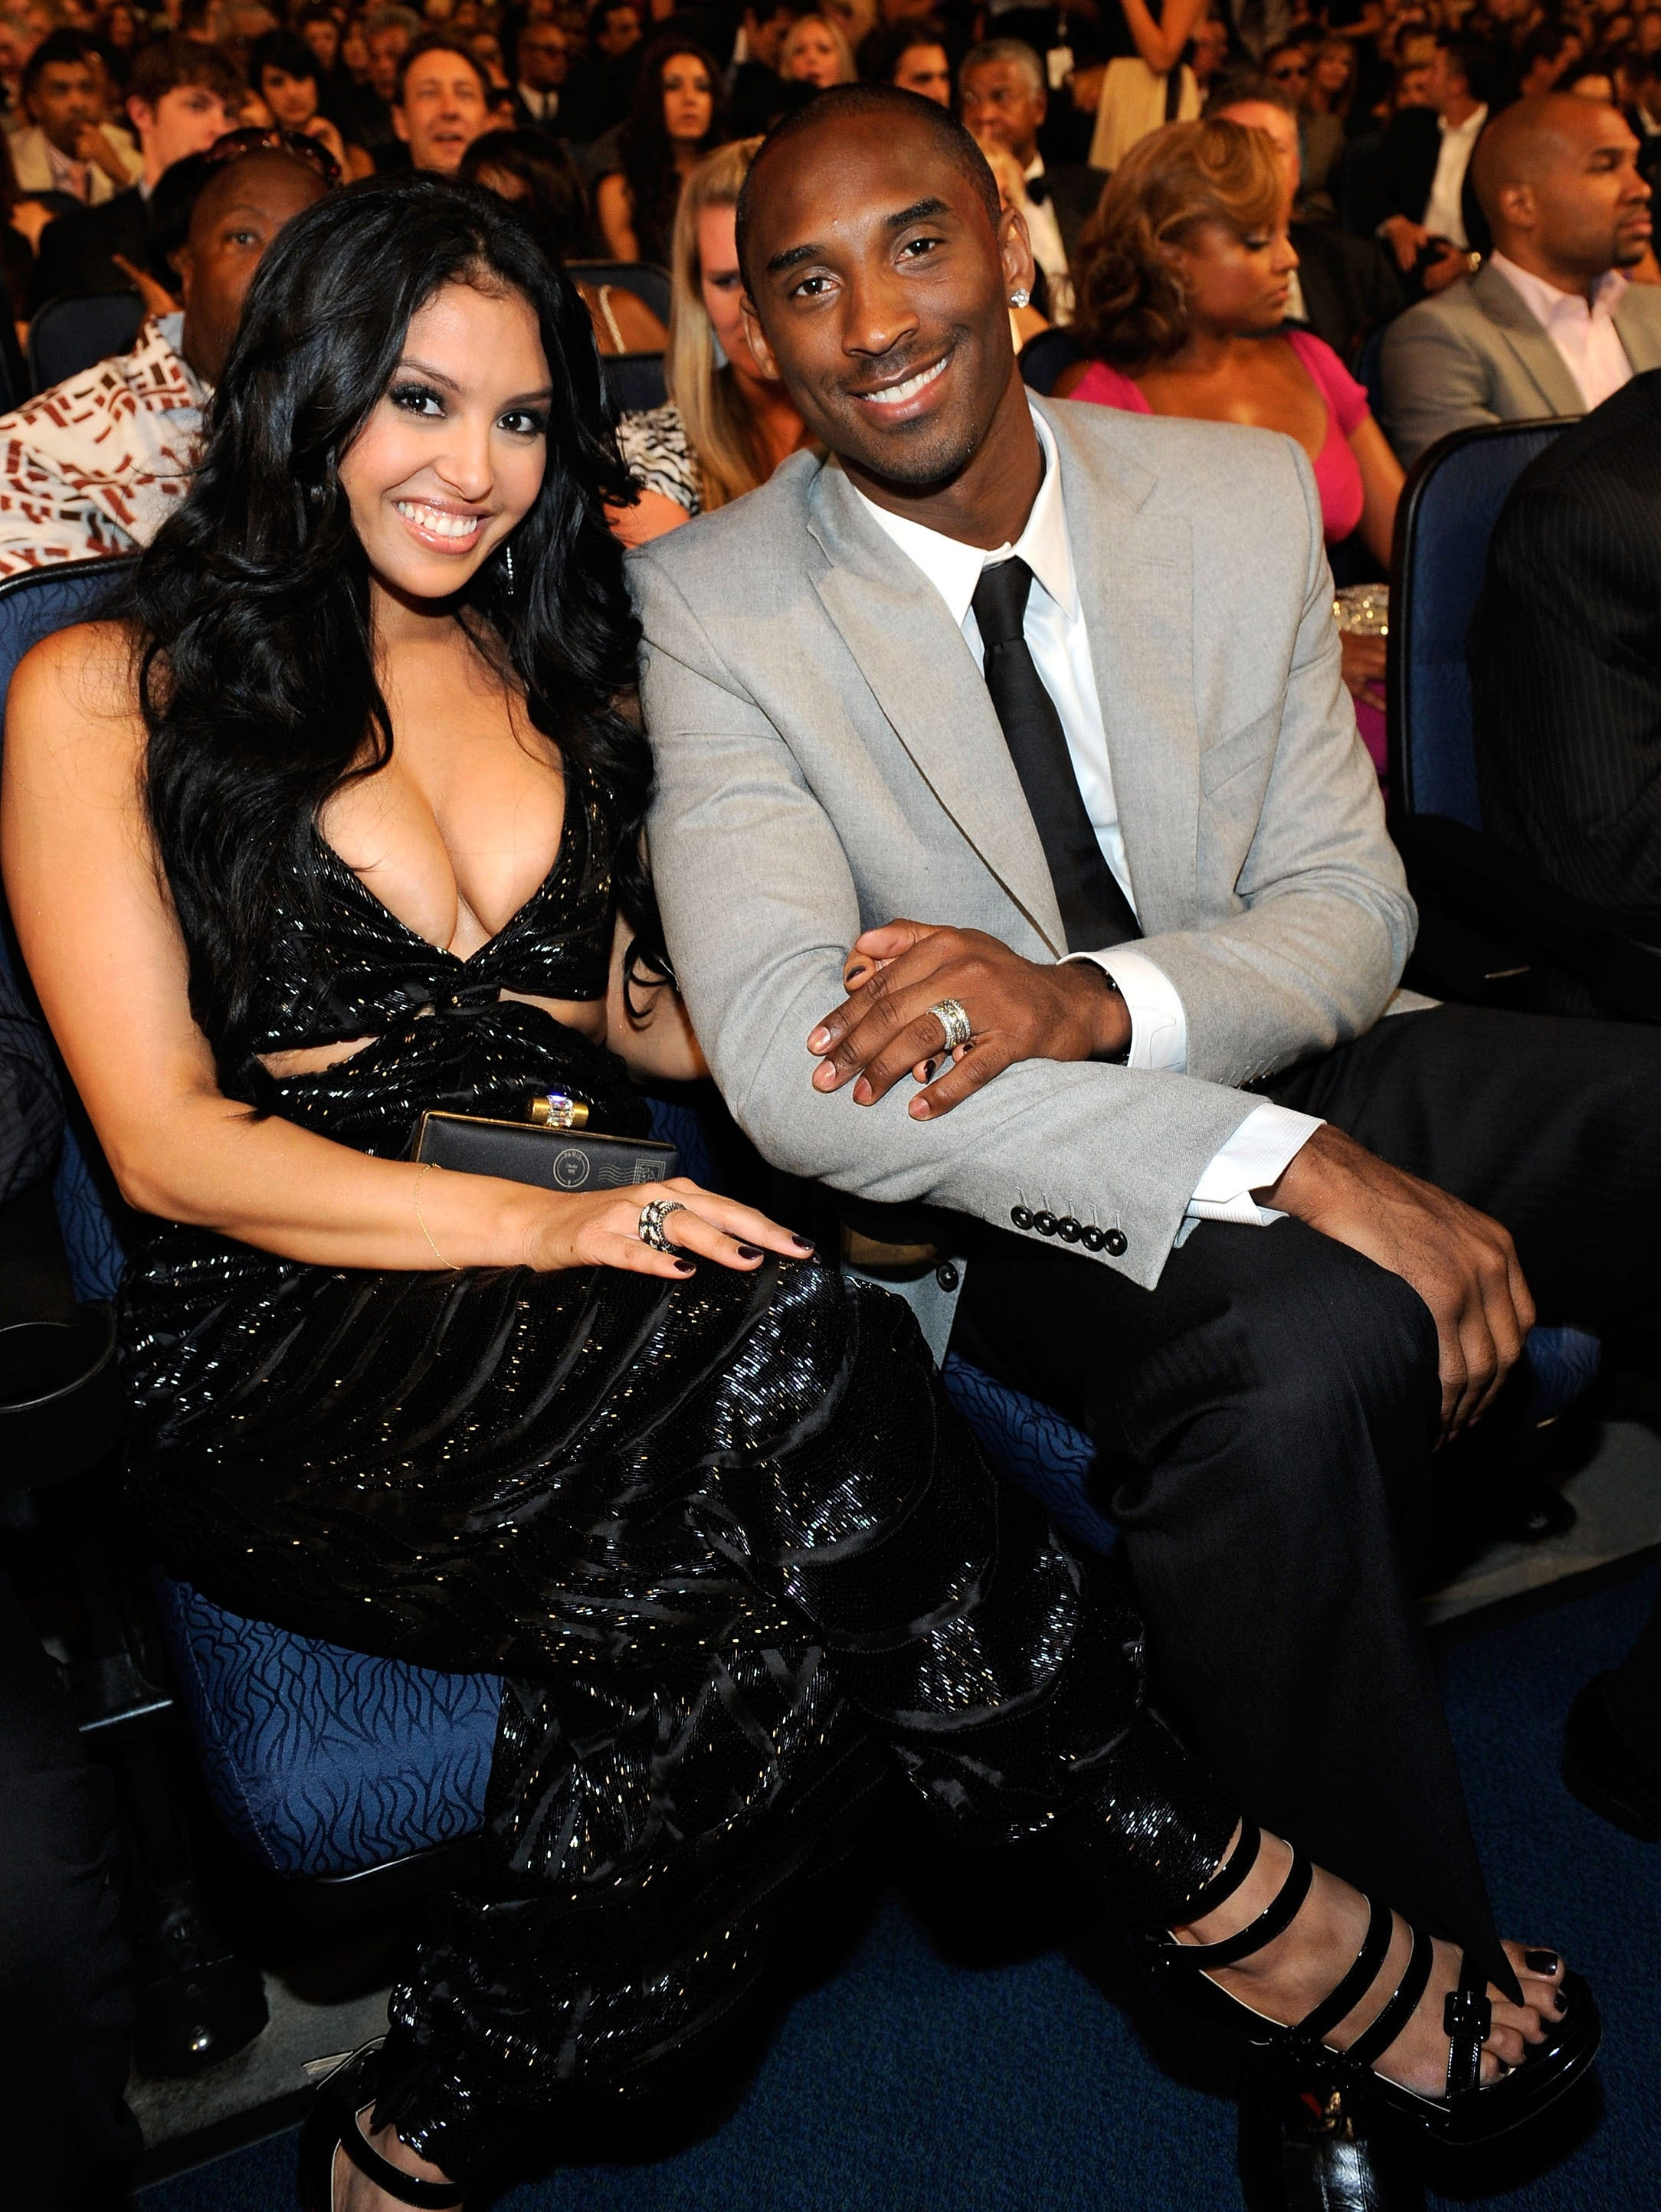 Vanessa, Kobe Bryant call off divorce via social media